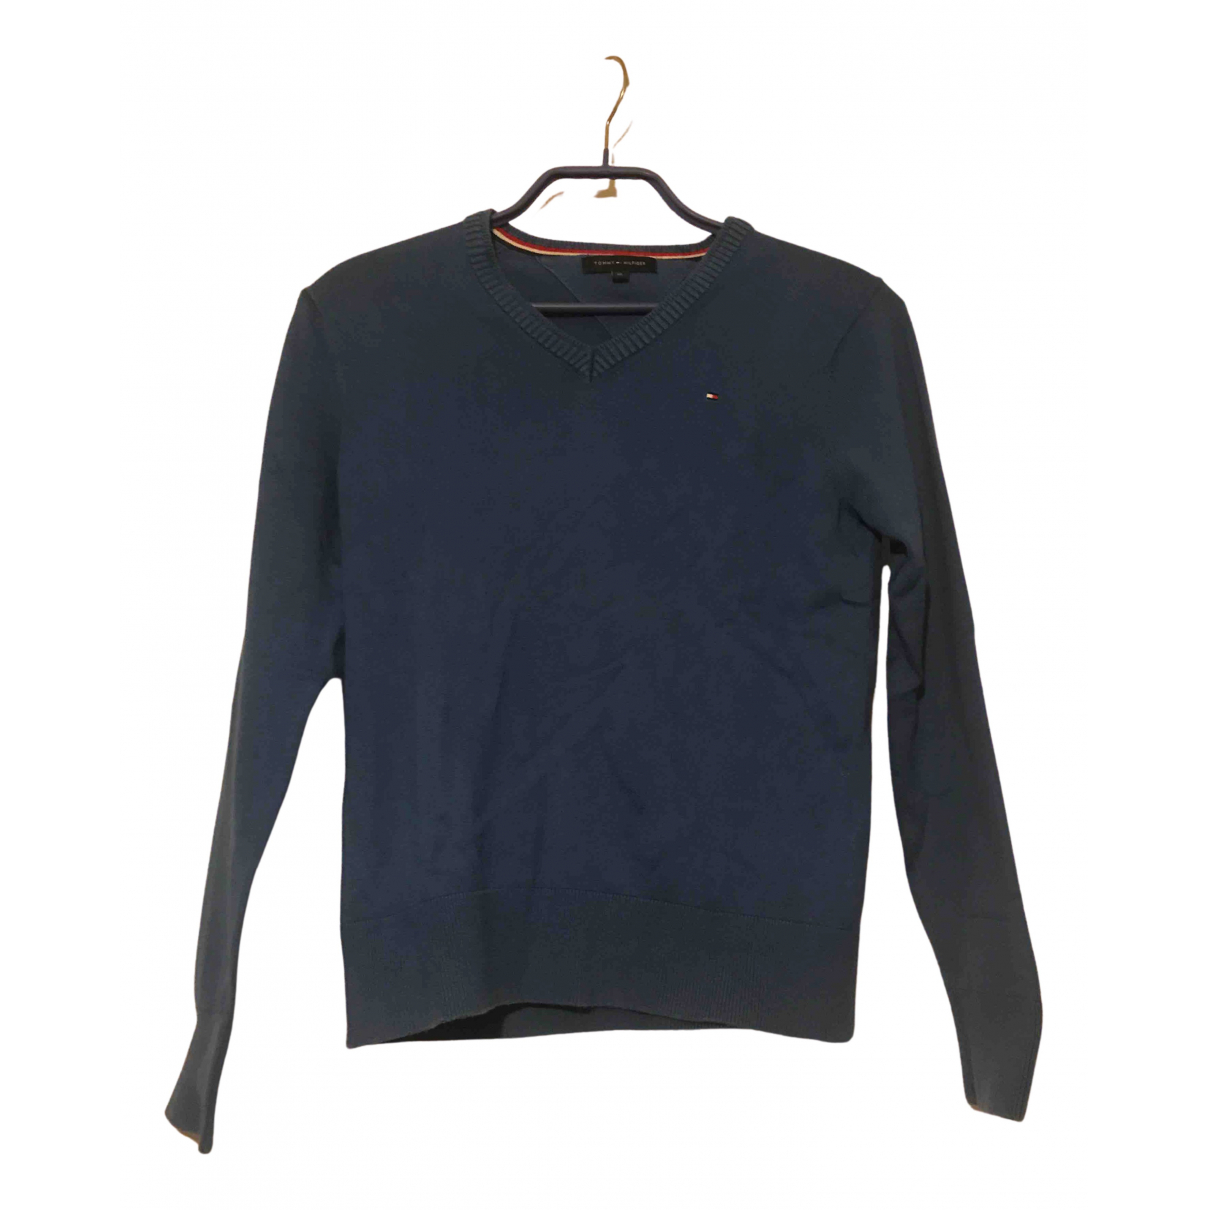 Tommy Hilfiger N Blue Cotton Knitwear for Kids 10 years - up to 142cm FR